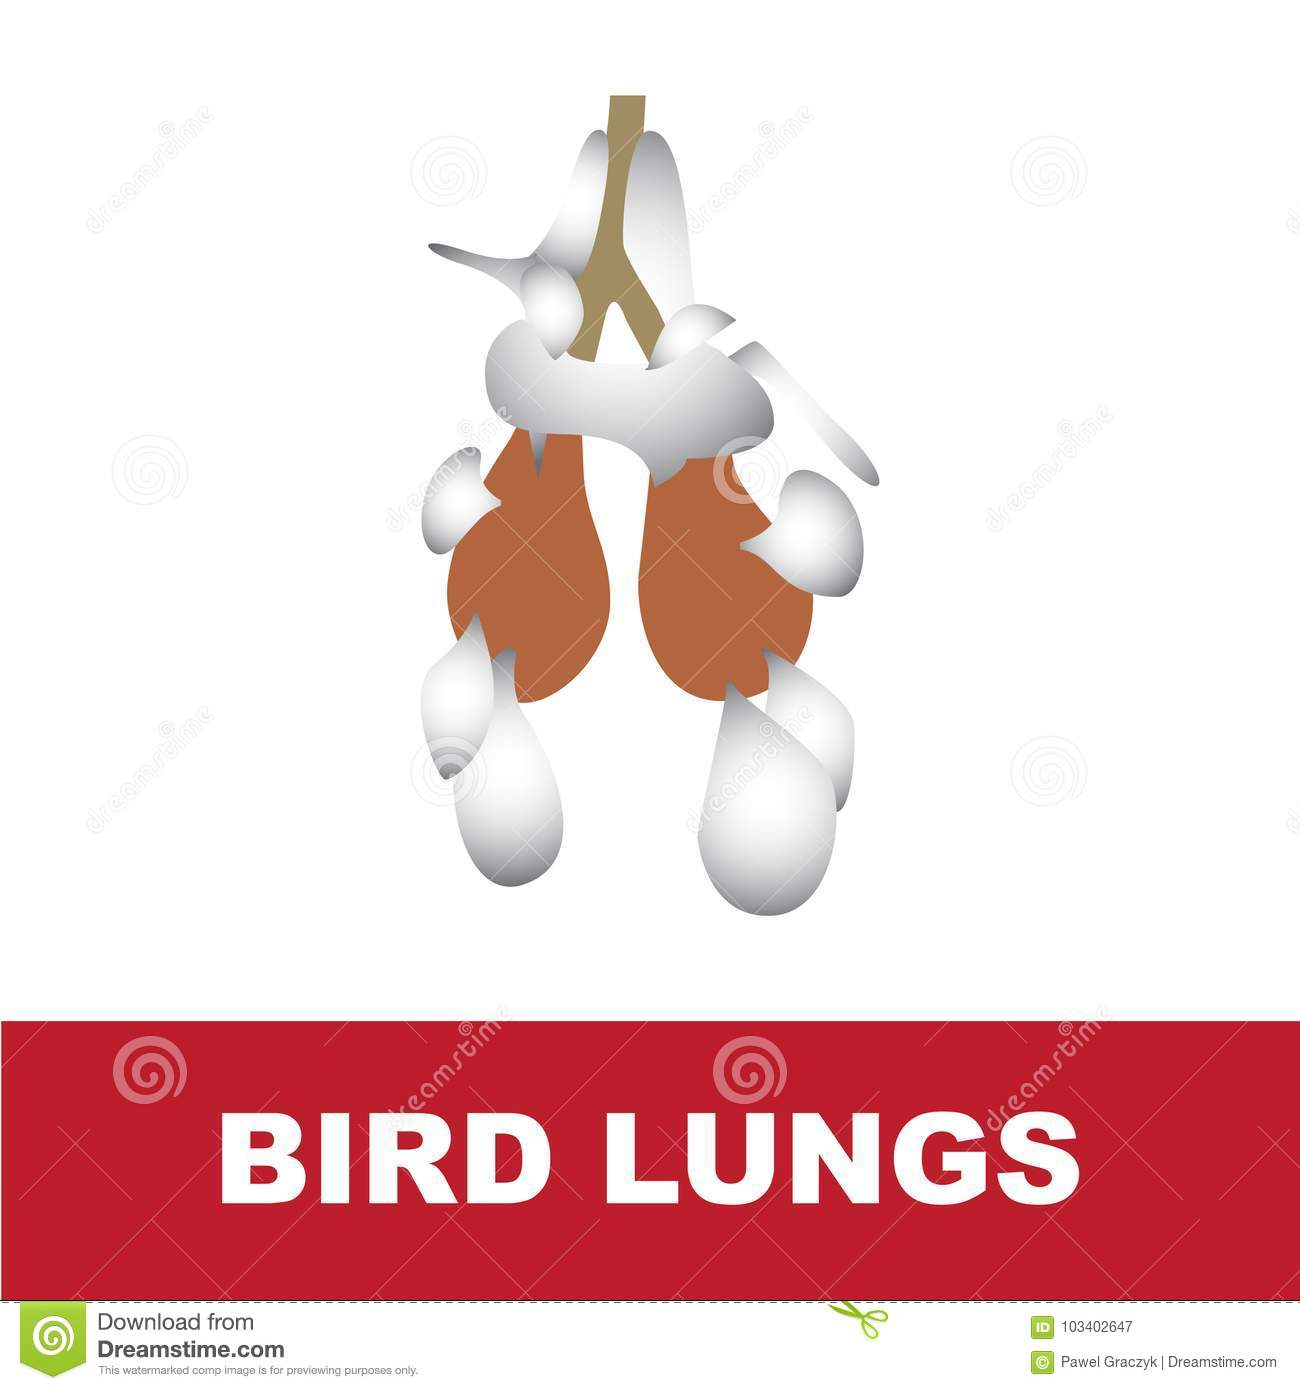 hight resolution of vector illustration of bird schematic lung anatomy